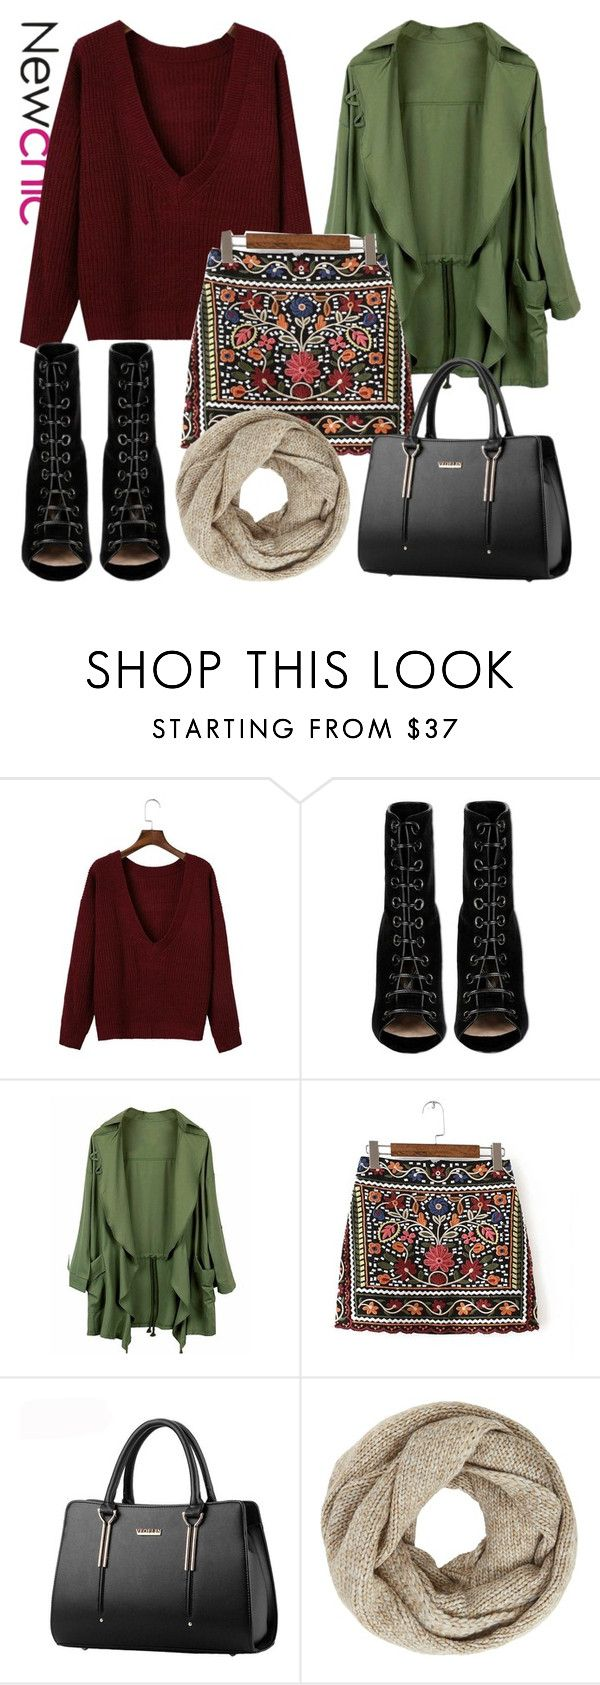 """""""New Chic: Winter Casual"""" by emilylouisehale ❤ liked on Polyvore featuring Barbara Bui and John Lewis"""